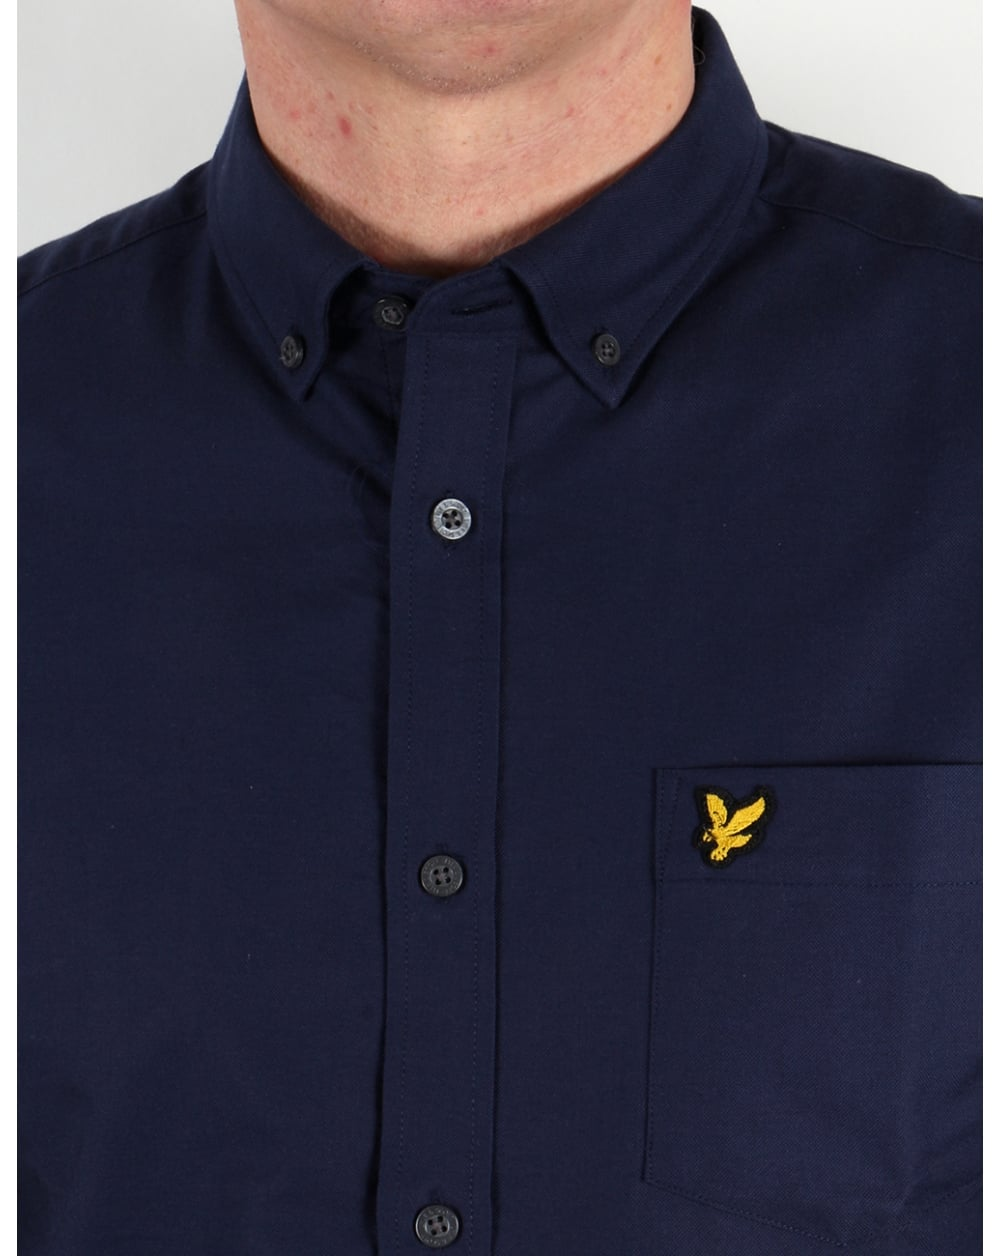 lyle and scott shirt navy oxford long sleeve mens smart. Black Bedroom Furniture Sets. Home Design Ideas